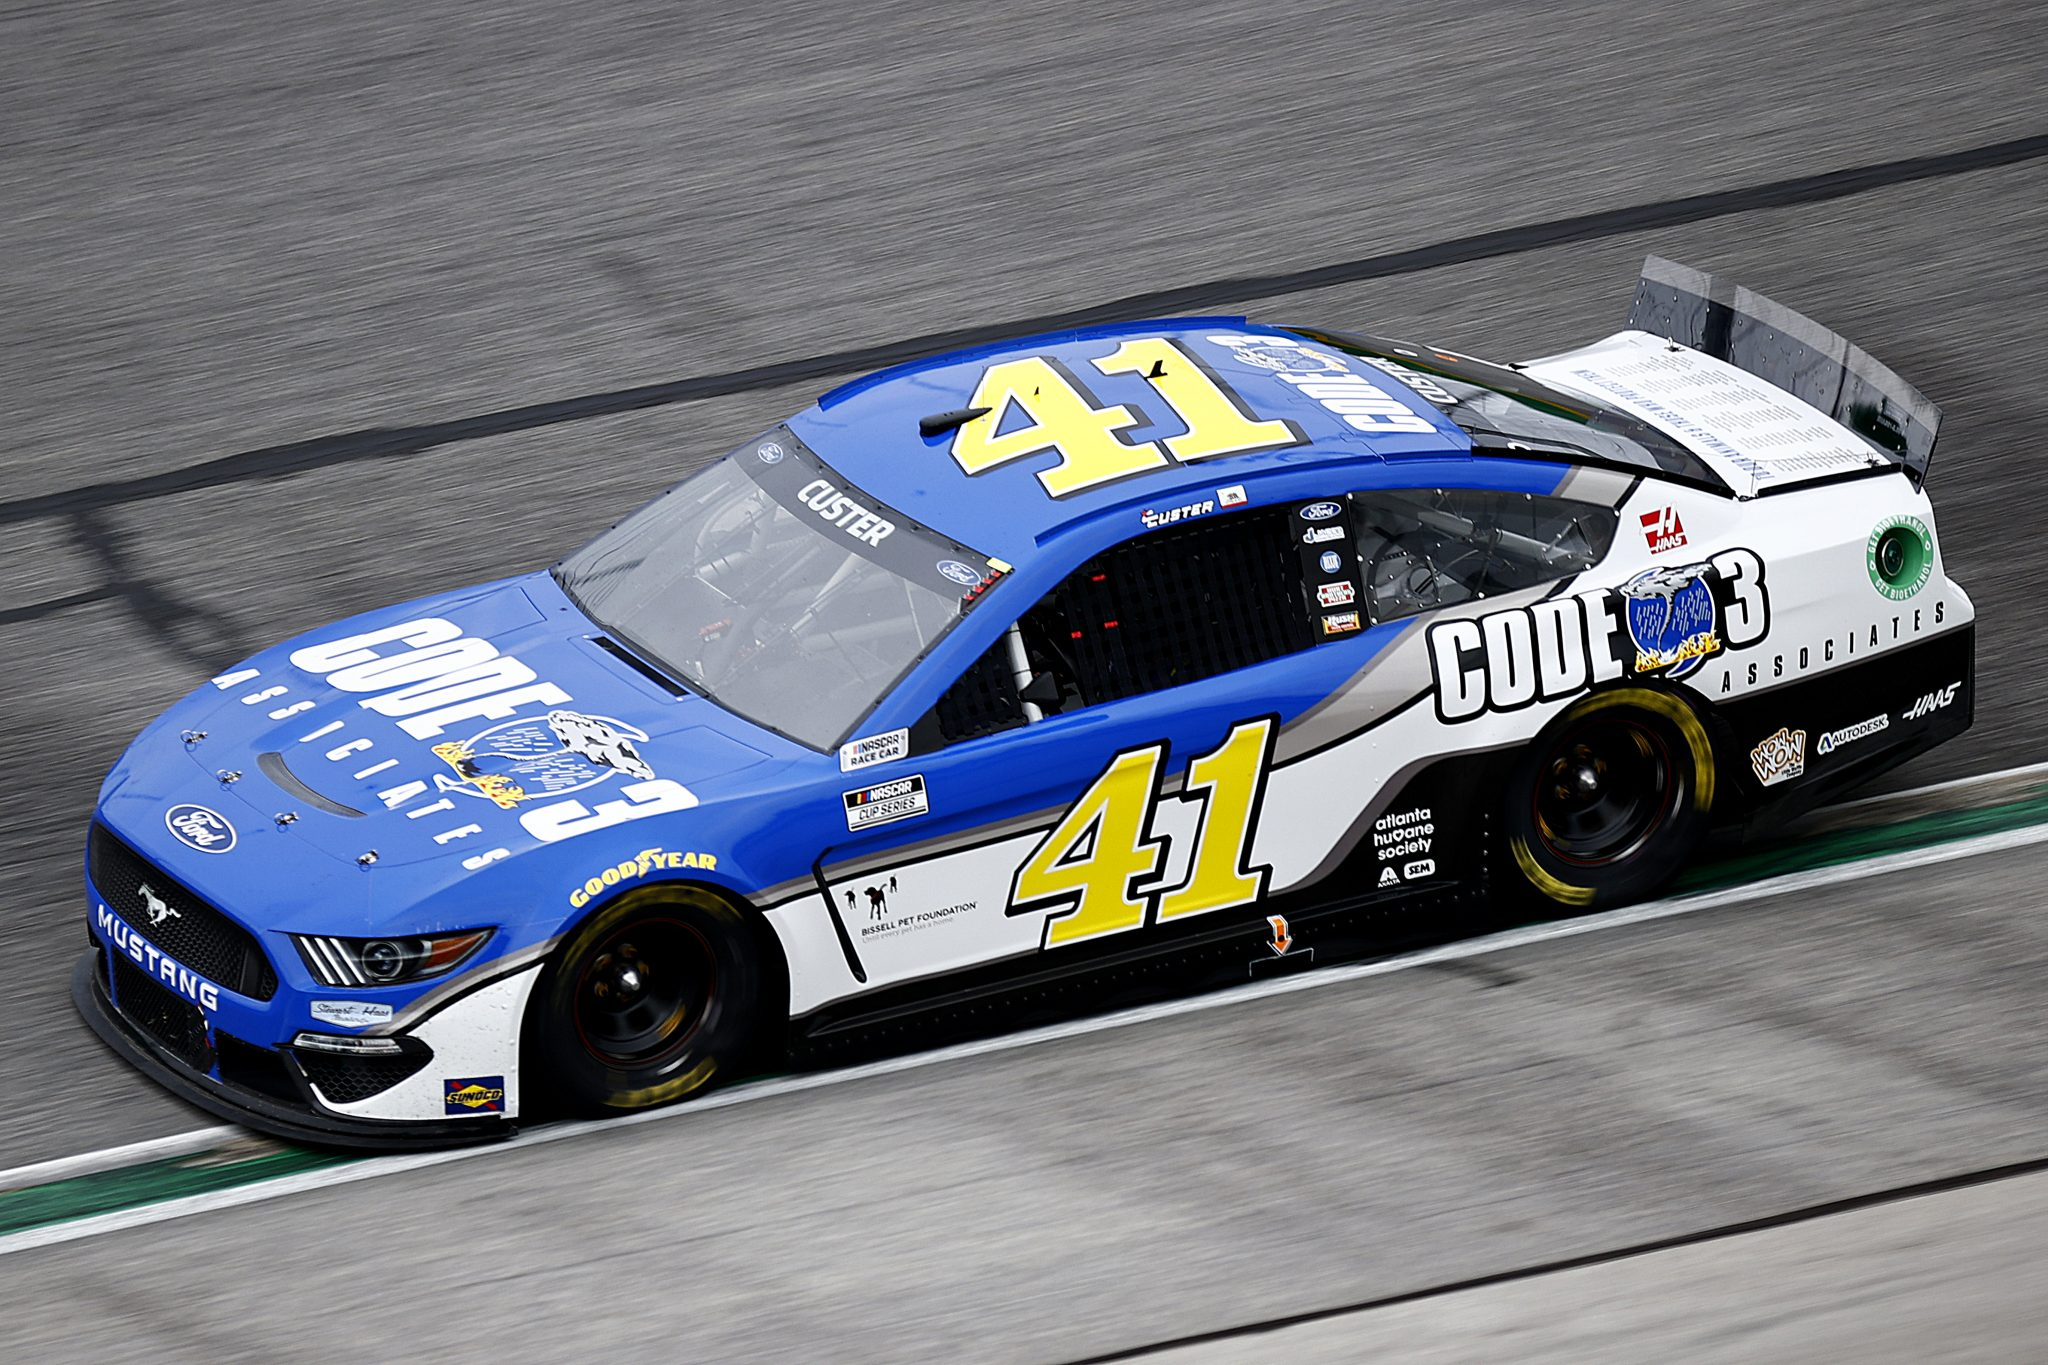 HAMPTON, GEORGIA - JULY 11: Cole Custer, driver of the #41 Code 3 Associates Ford, drives during the NASCAR Cup Series Quaker State 400 presented by Walmart at Atlanta Motor Speedway on July 11, 2021 in Hampton, Georgia. (Photo by Jared C. Tilton/Getty Images) | Getty Images